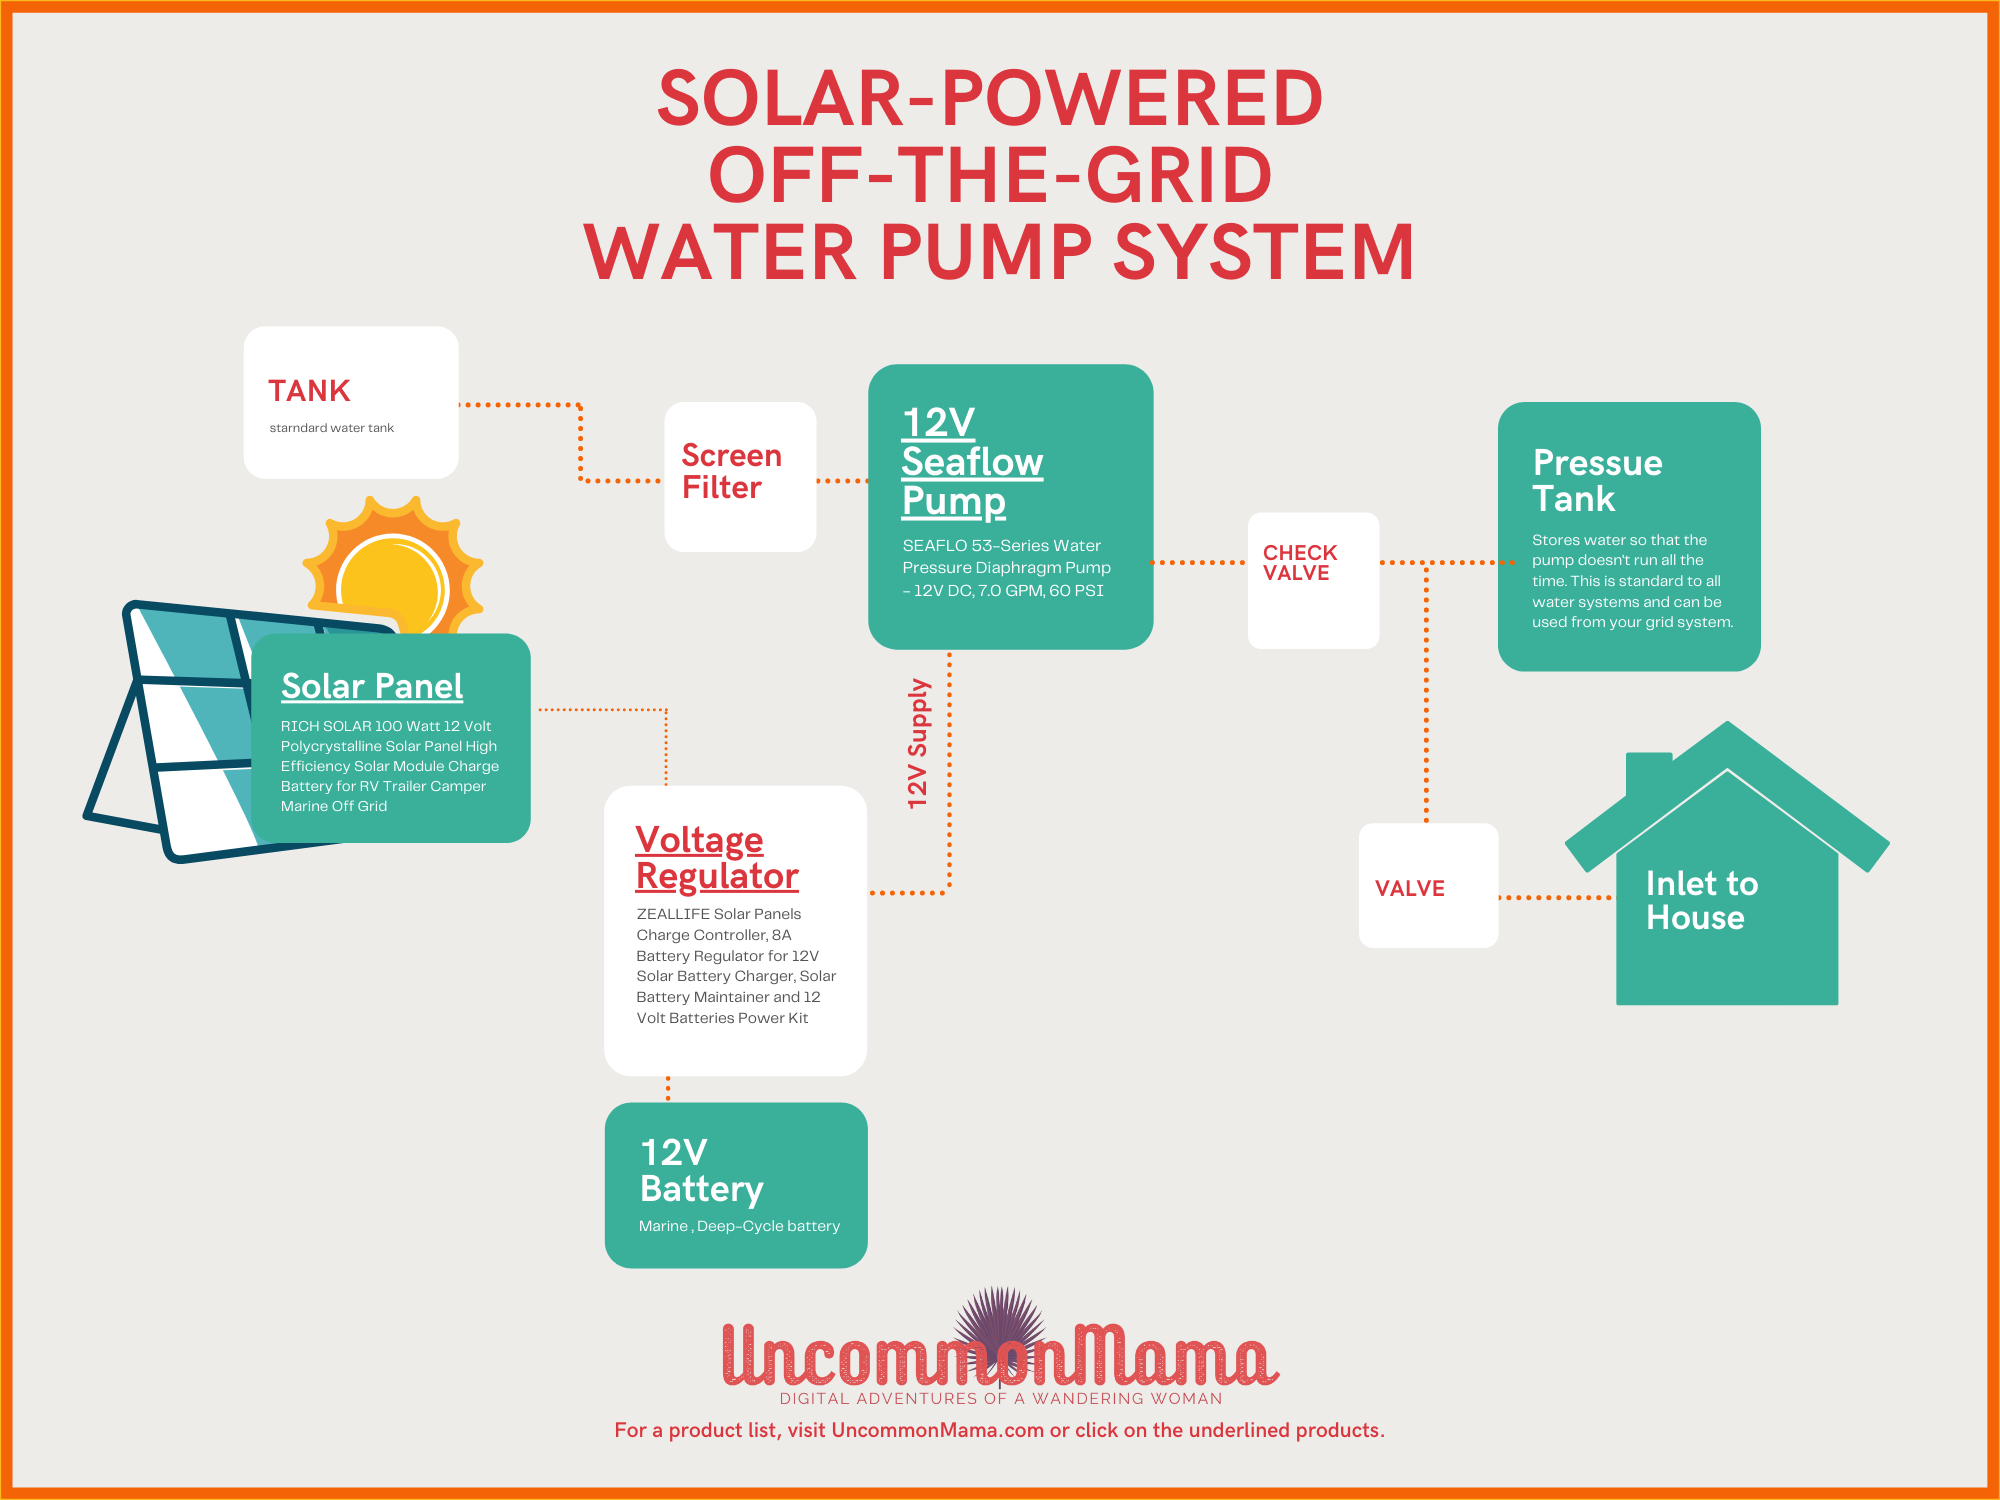 schematic diagram for Caribbean solar water pump system for house